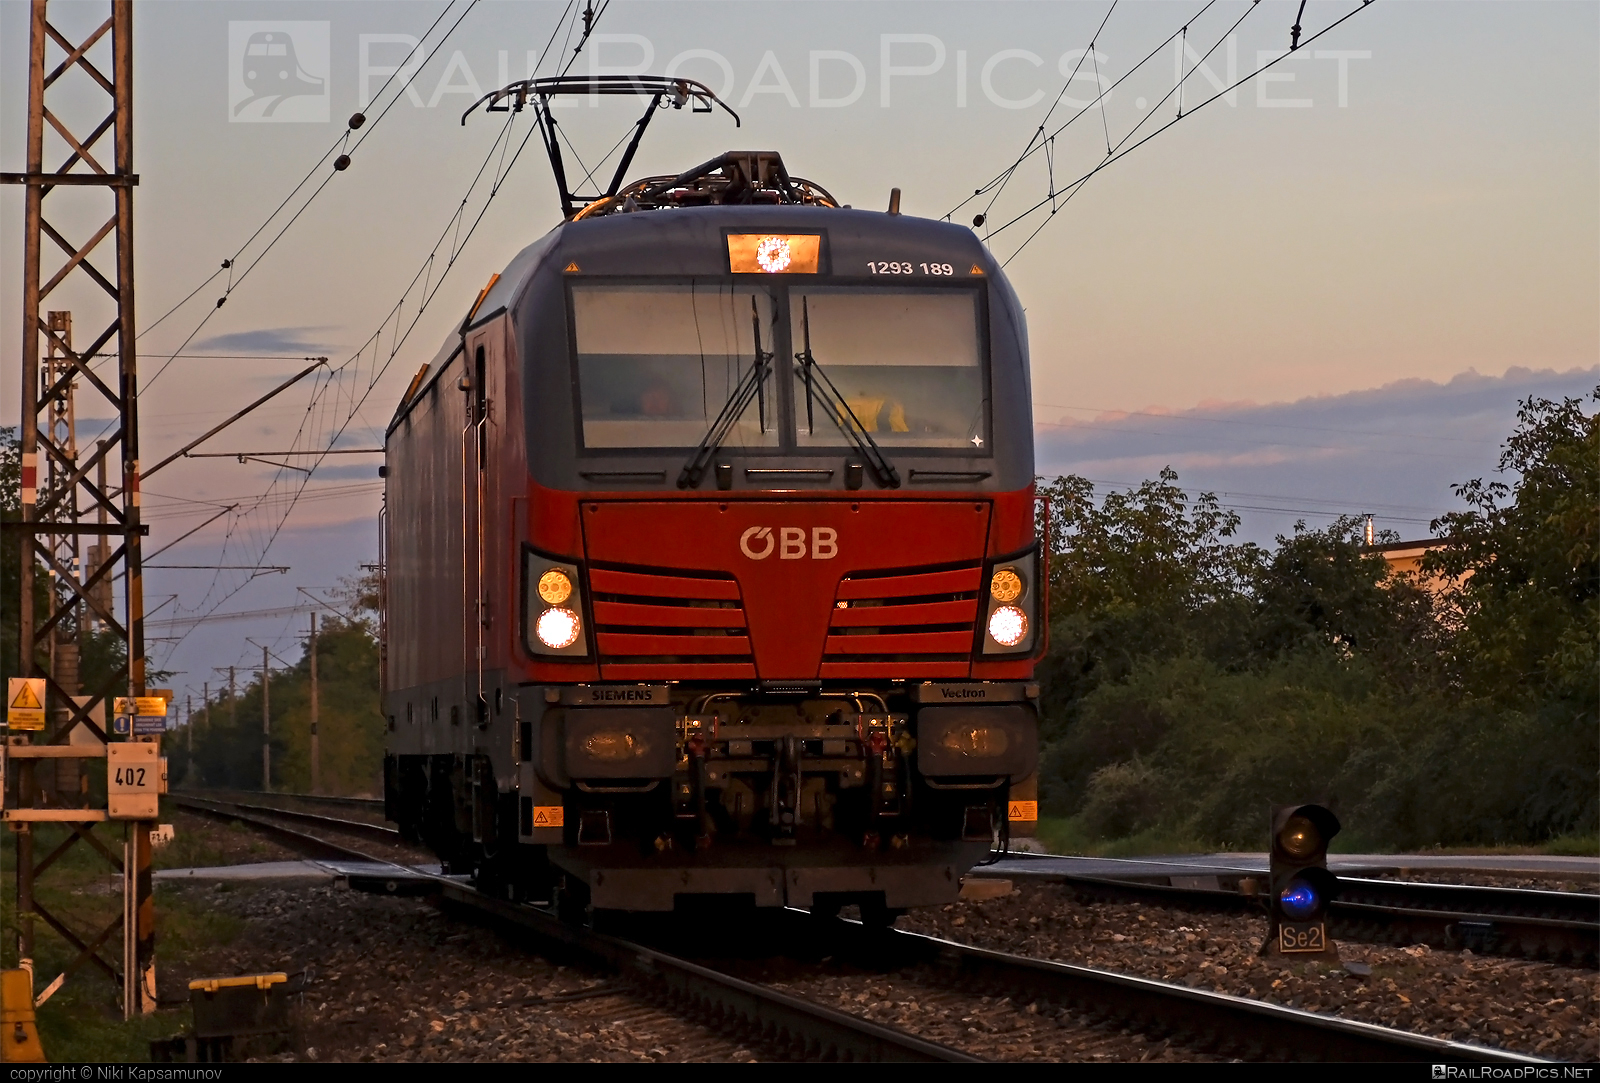 Siemens Vectron MS - 1293 189 operated by Rail Cargo Carrier – Slovakia s.r.o. #obb #osterreichischebundesbahnen #siemens #siemensvectron #siemensvectronms #vectron #vectronms